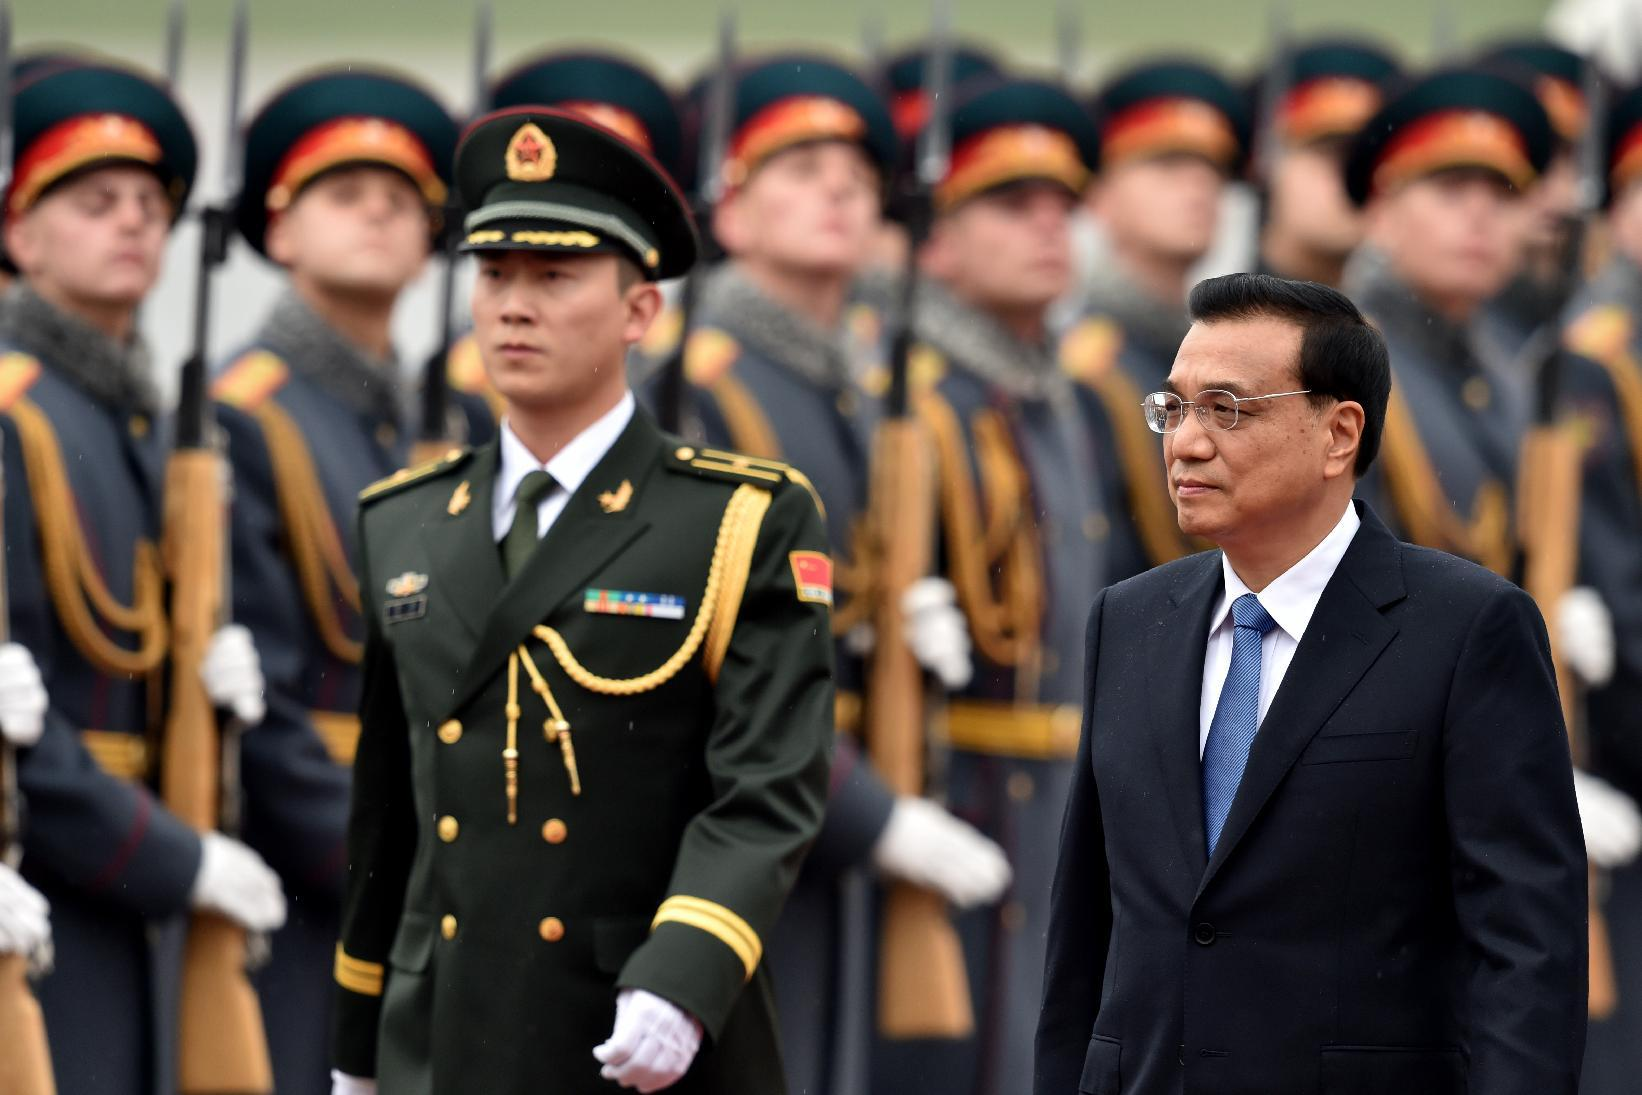 Chinese Prime Minister Li Keqiang's three-day Russia trip is part of a week-long visit to Europe (AFP Photo/Kirill Kudryavtsev)